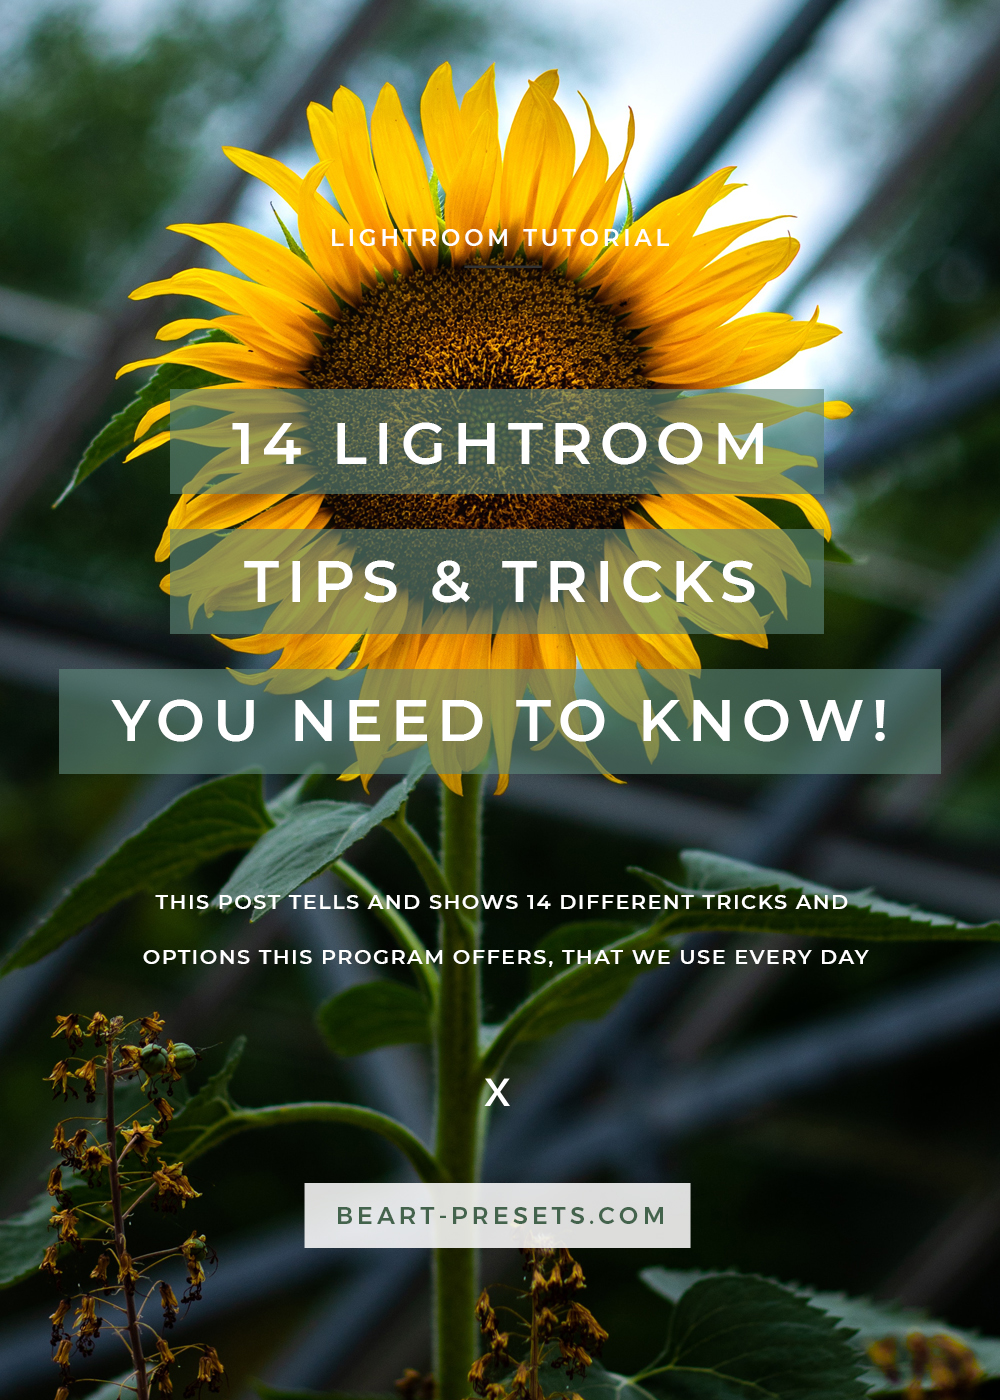 LIGHTROOM TIPS & TRICKS YOU NEED TO KNOW